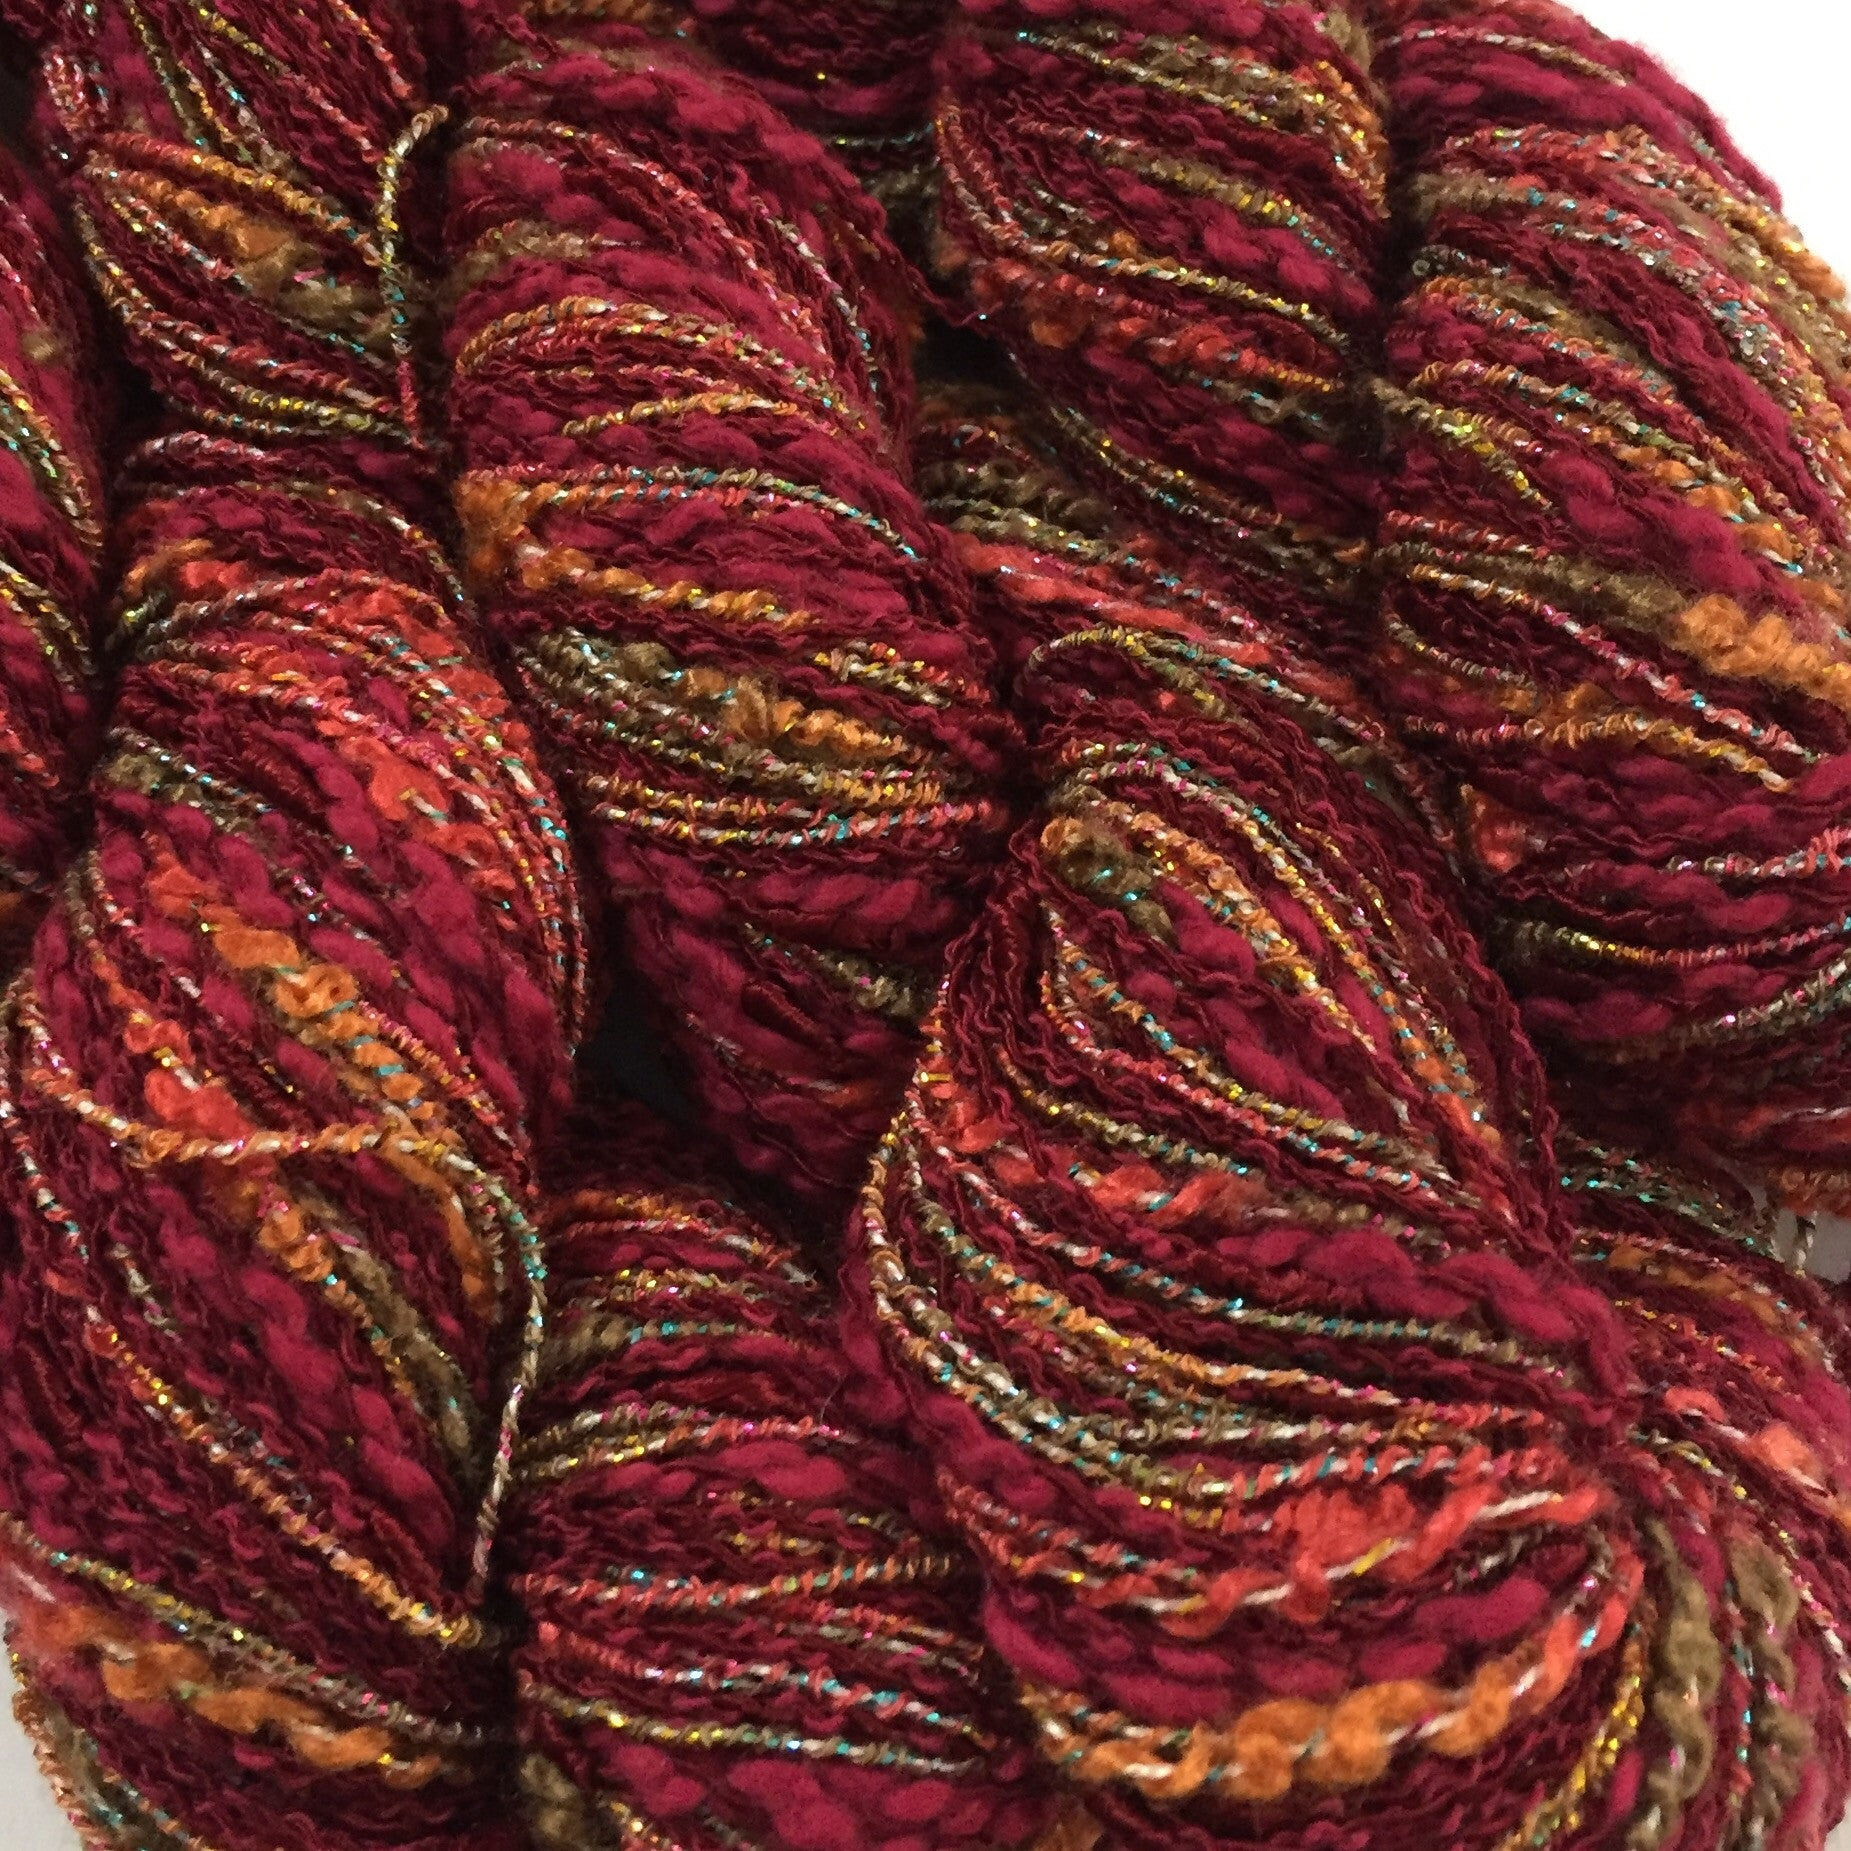 Lucci Yarn IrisLuca light worsted DK weight color #26 Red